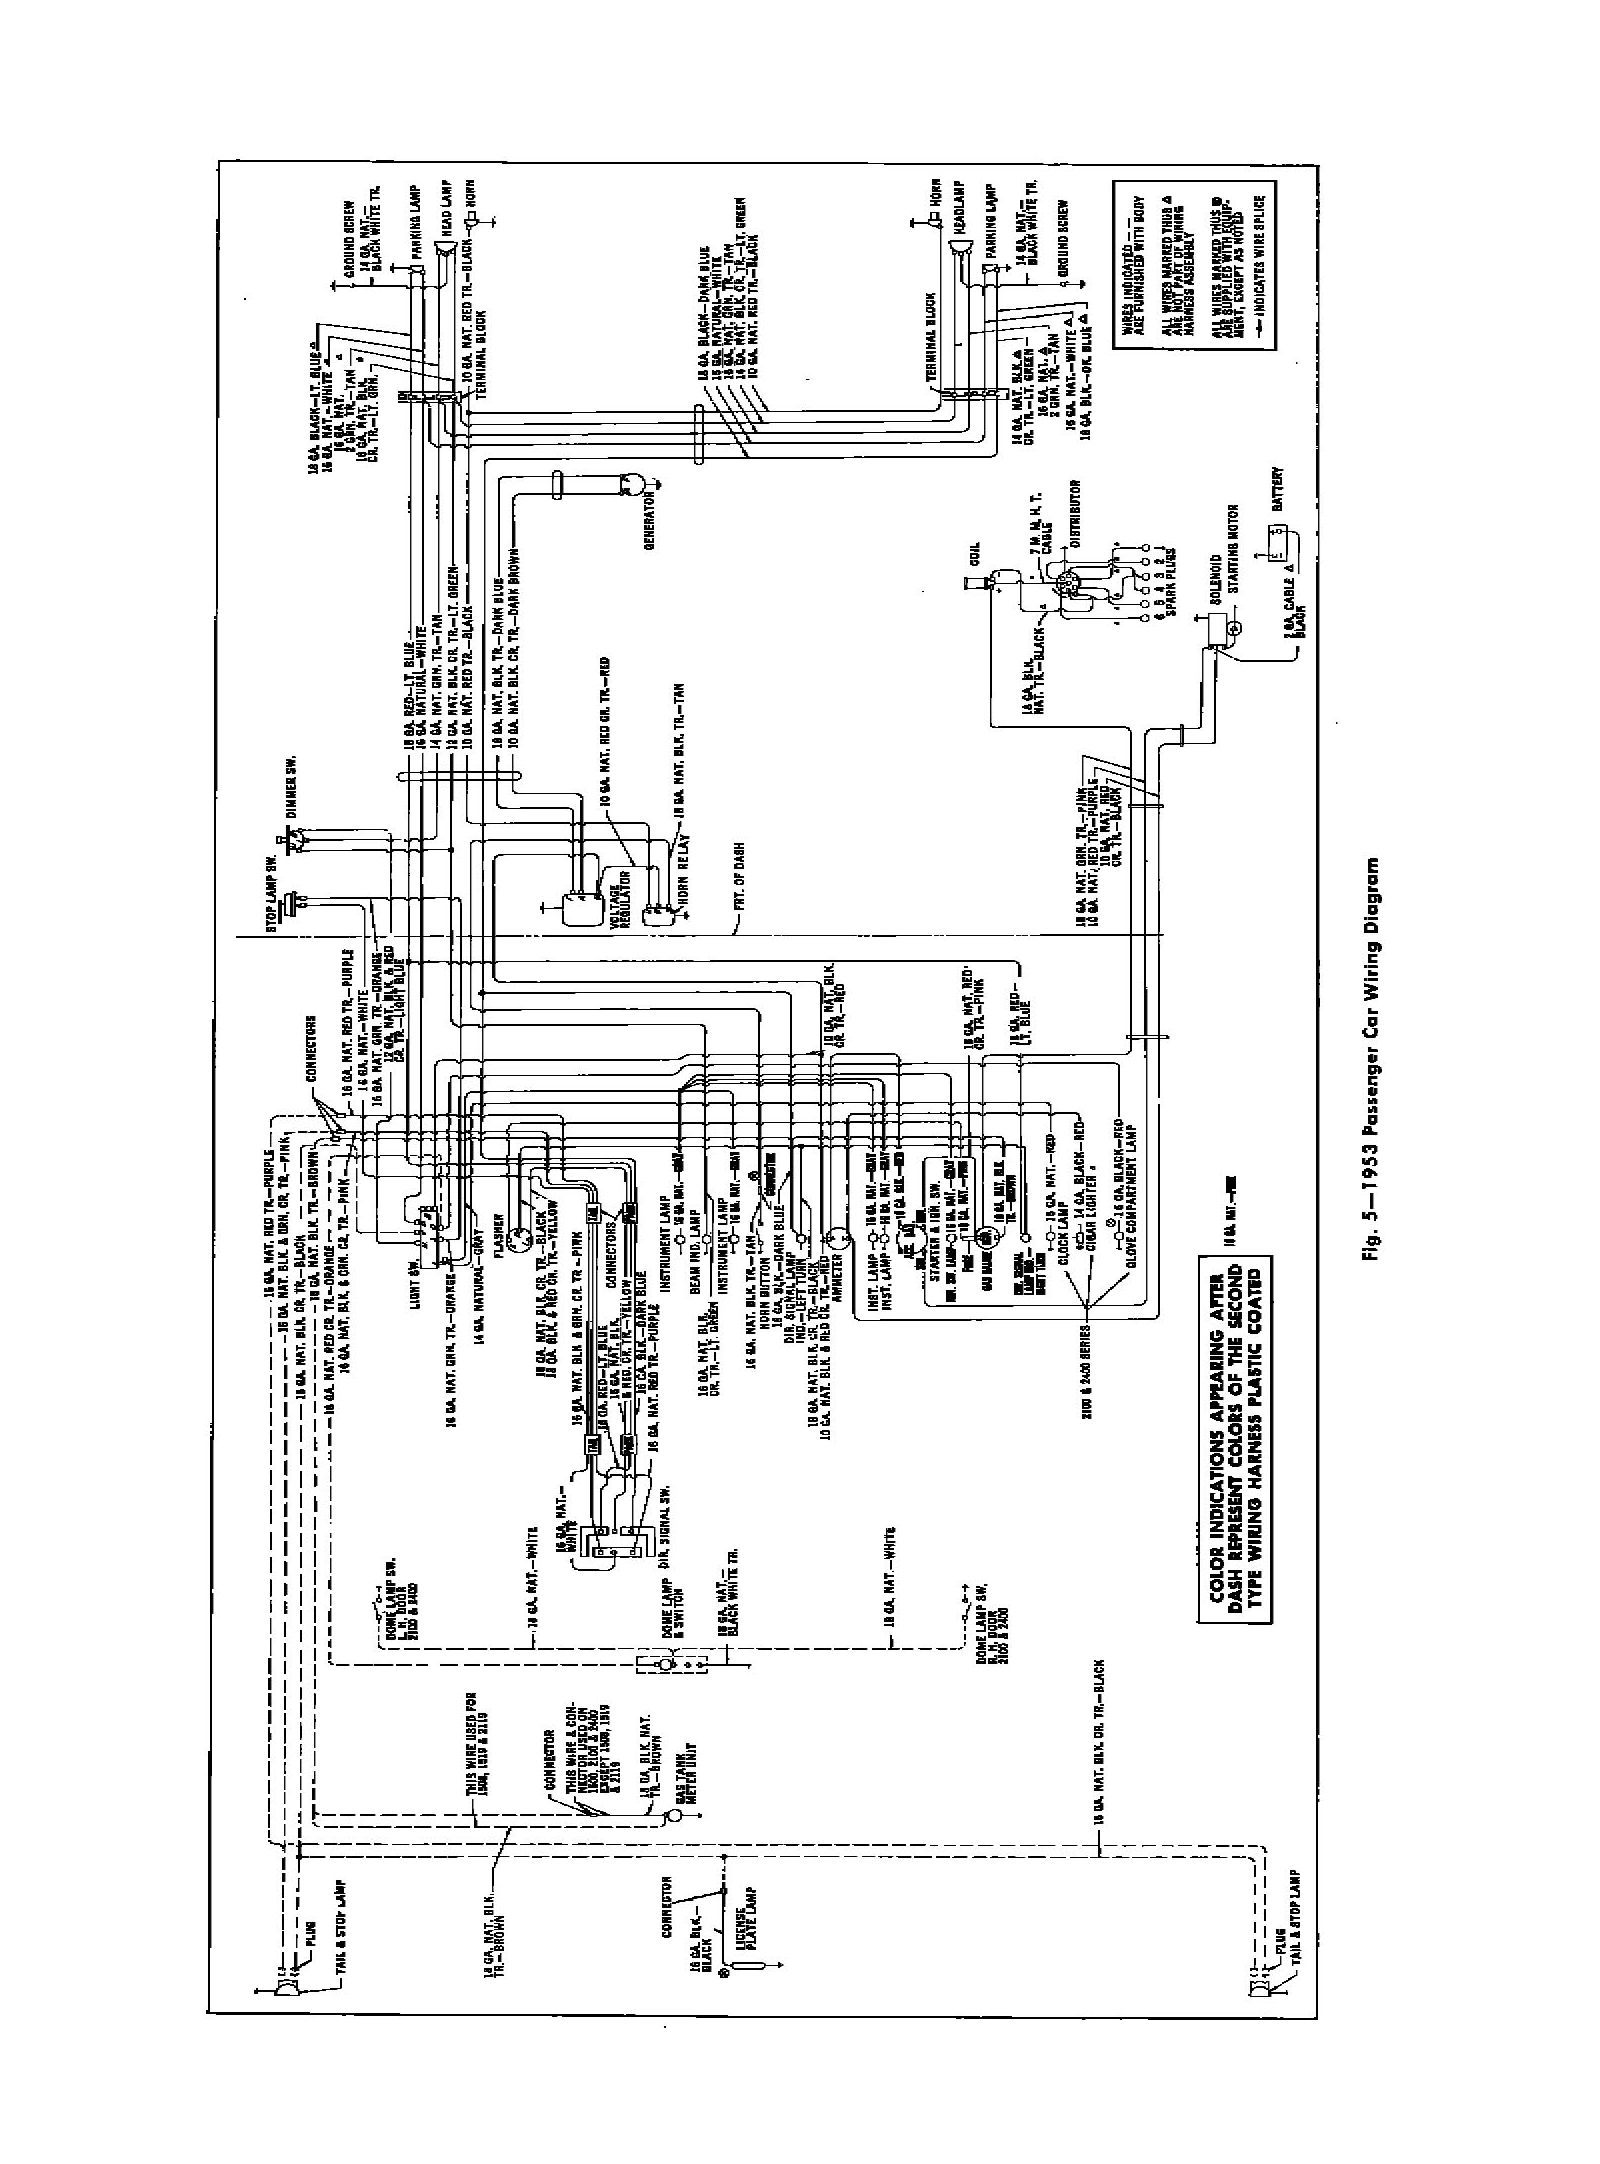 1953 Chevy 3100 Wiring Diagram, 1953, Get Free Image About